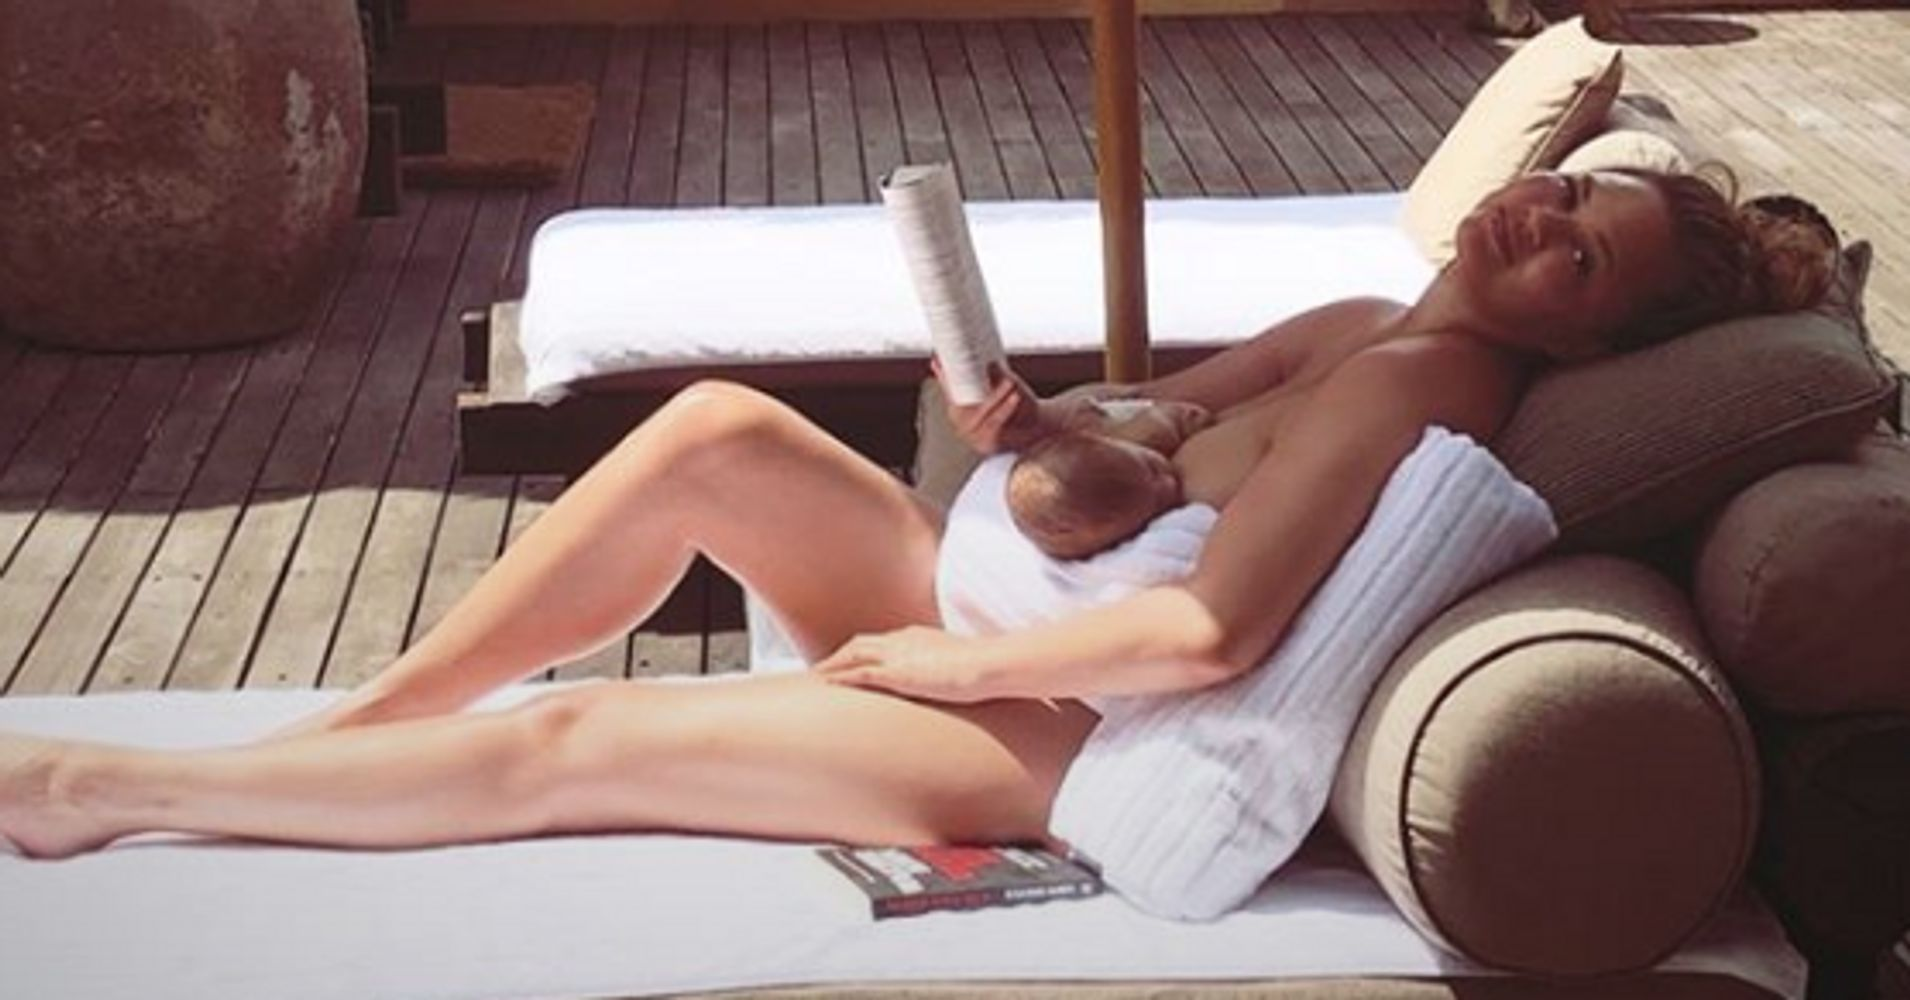 Chrissy Teigen Breastfeeds Baby Miles In The Buff In Intimate Family Vacation Picture